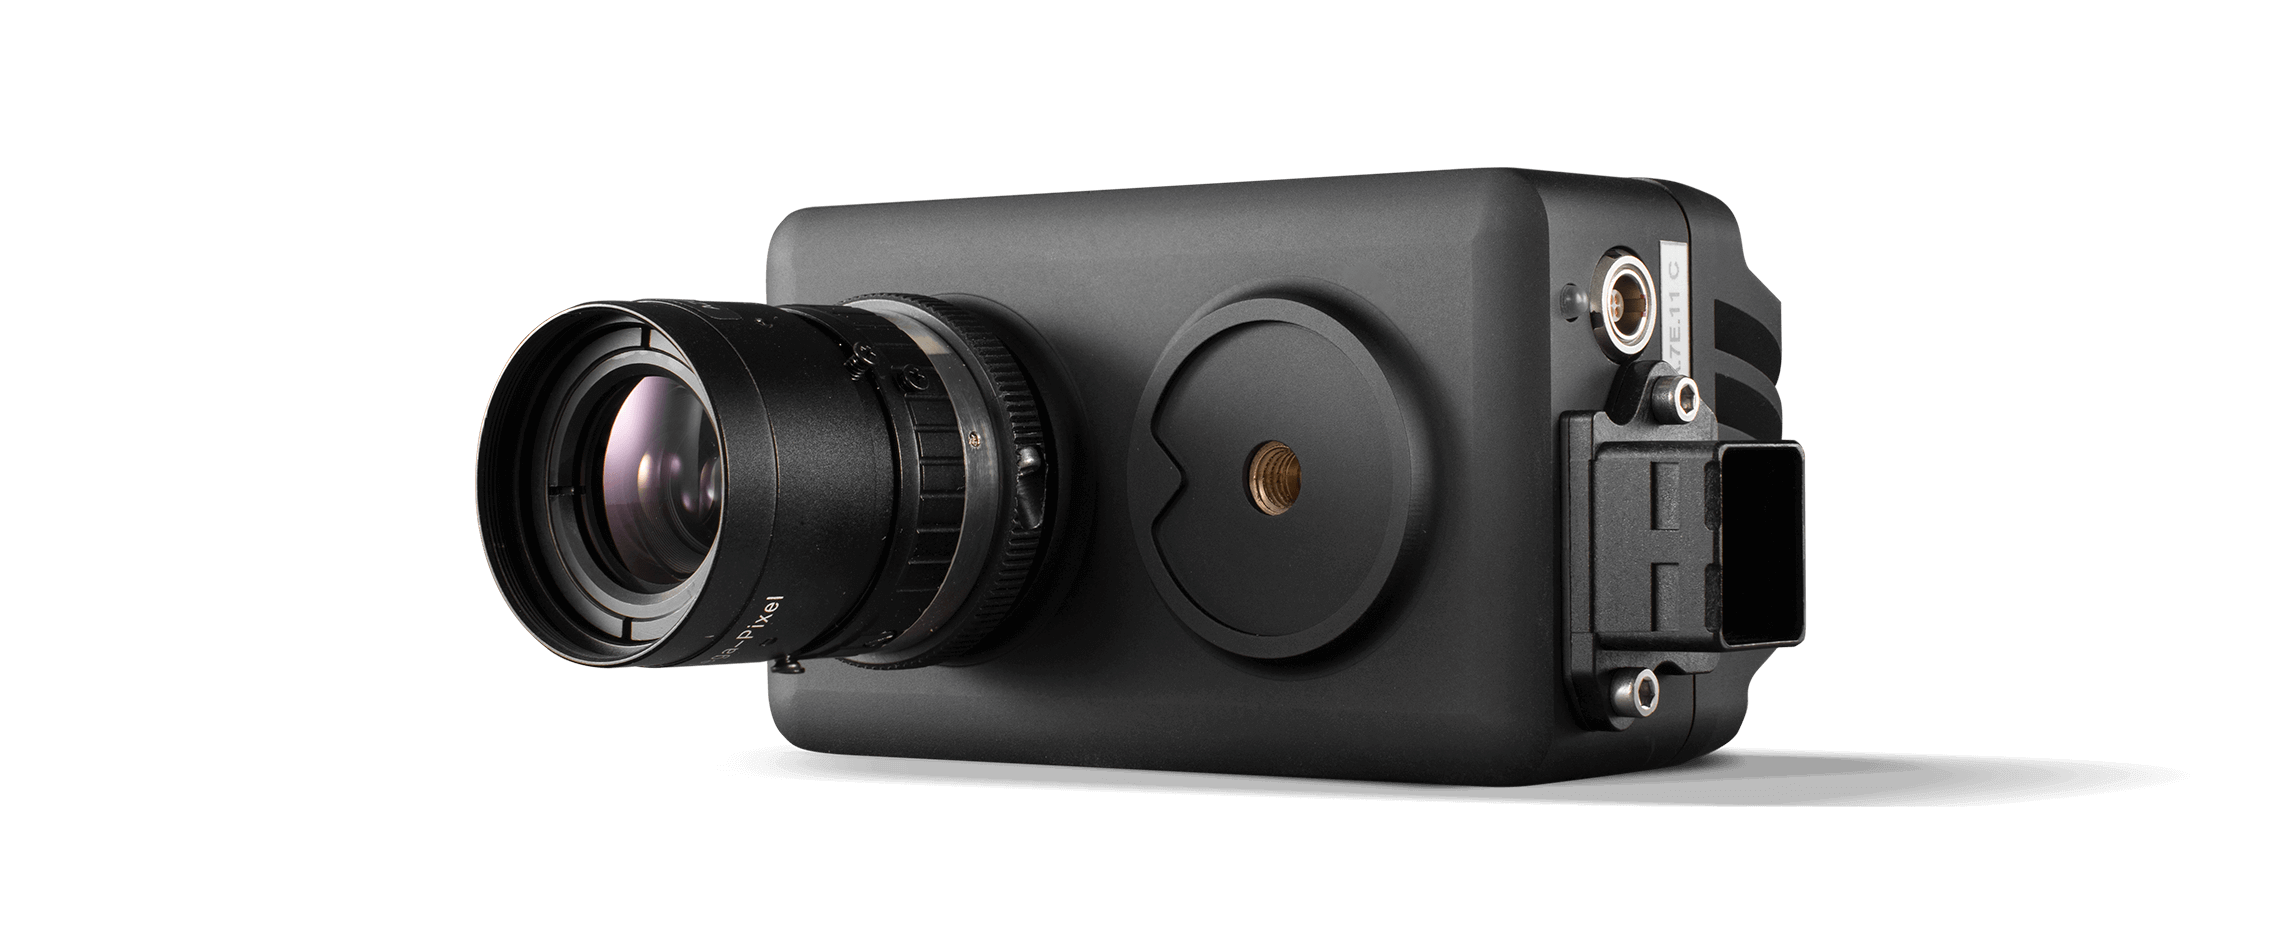 Industrial high-speed video camera from Dewesoft